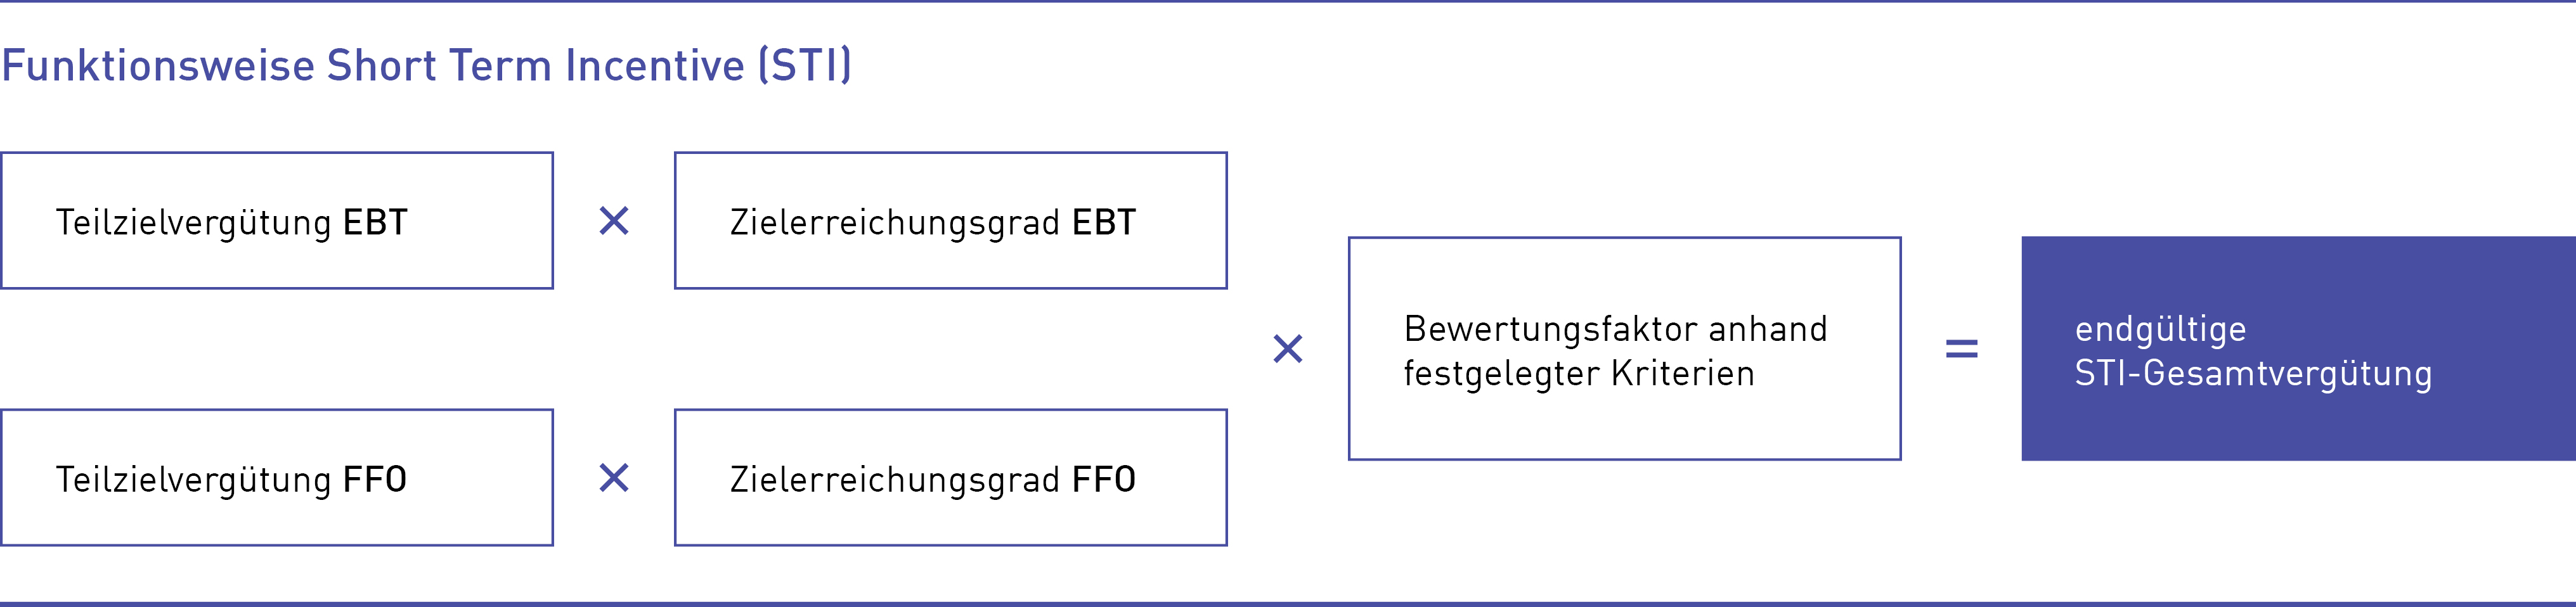 Funktionsweise Short Term Incentive (STI)